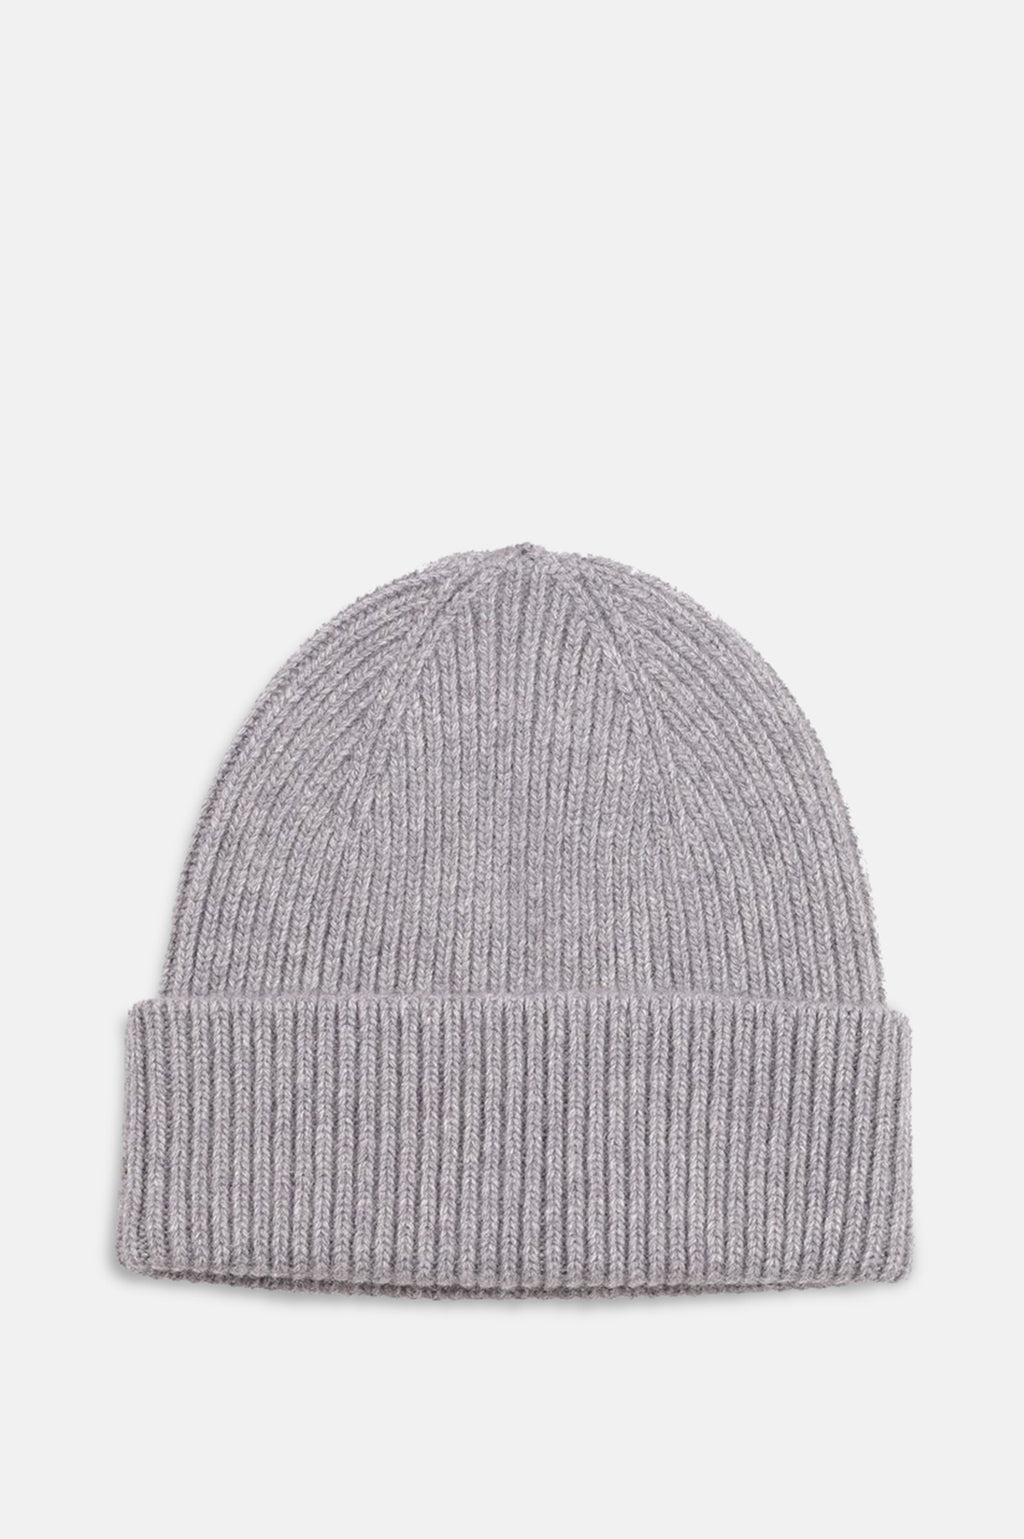 ReMade Wool Beanie Hat in Heather Grey